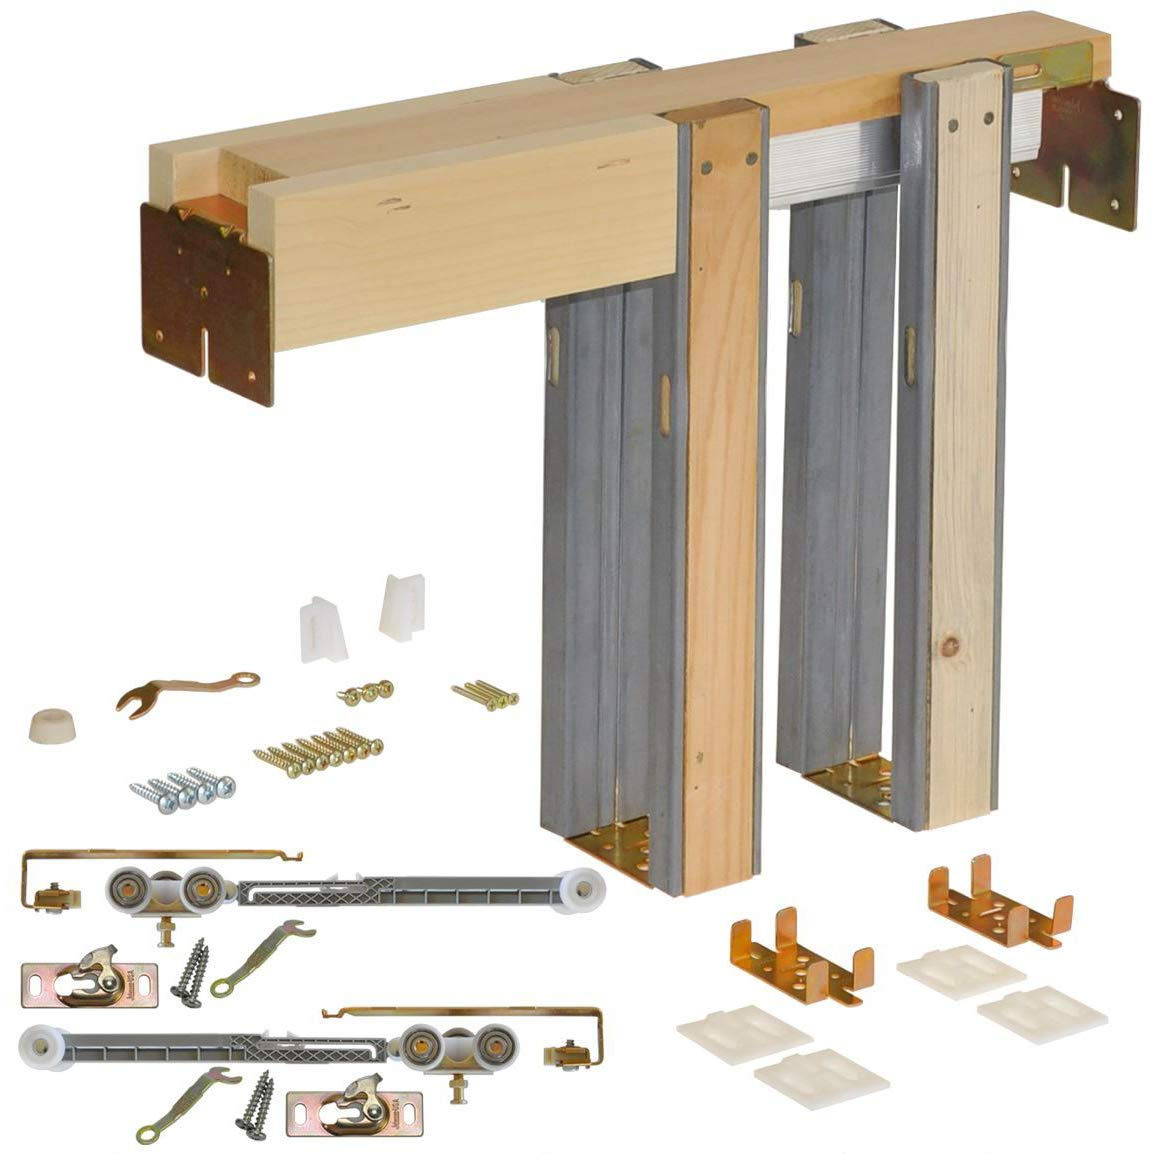 Johnson Hardware 1500 Soft Close Series Commercial Grade Pocket Door Frame for 2x4 Stud Wall (28 inch x 80 inch)